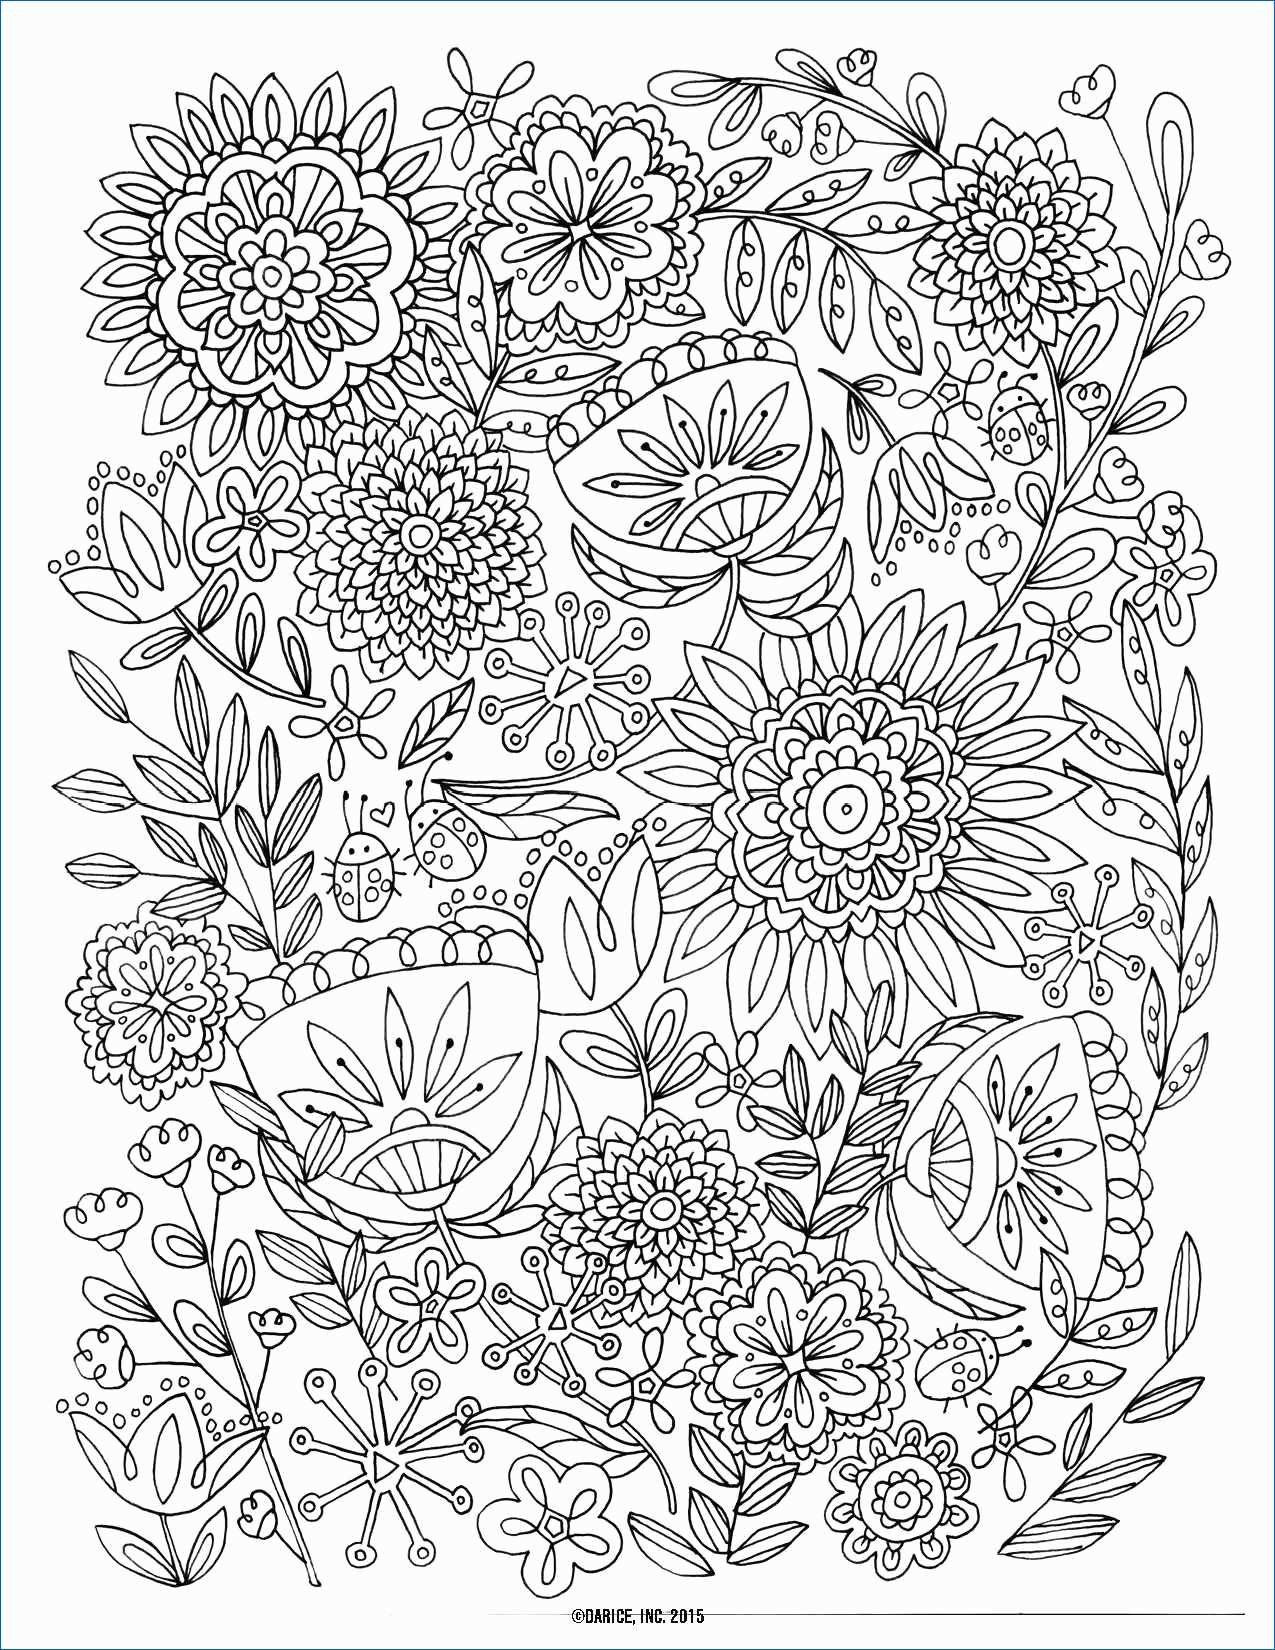 Free Printable Quilting Stencils – Fly-Bies.se - Free Printable Quilting Stencils